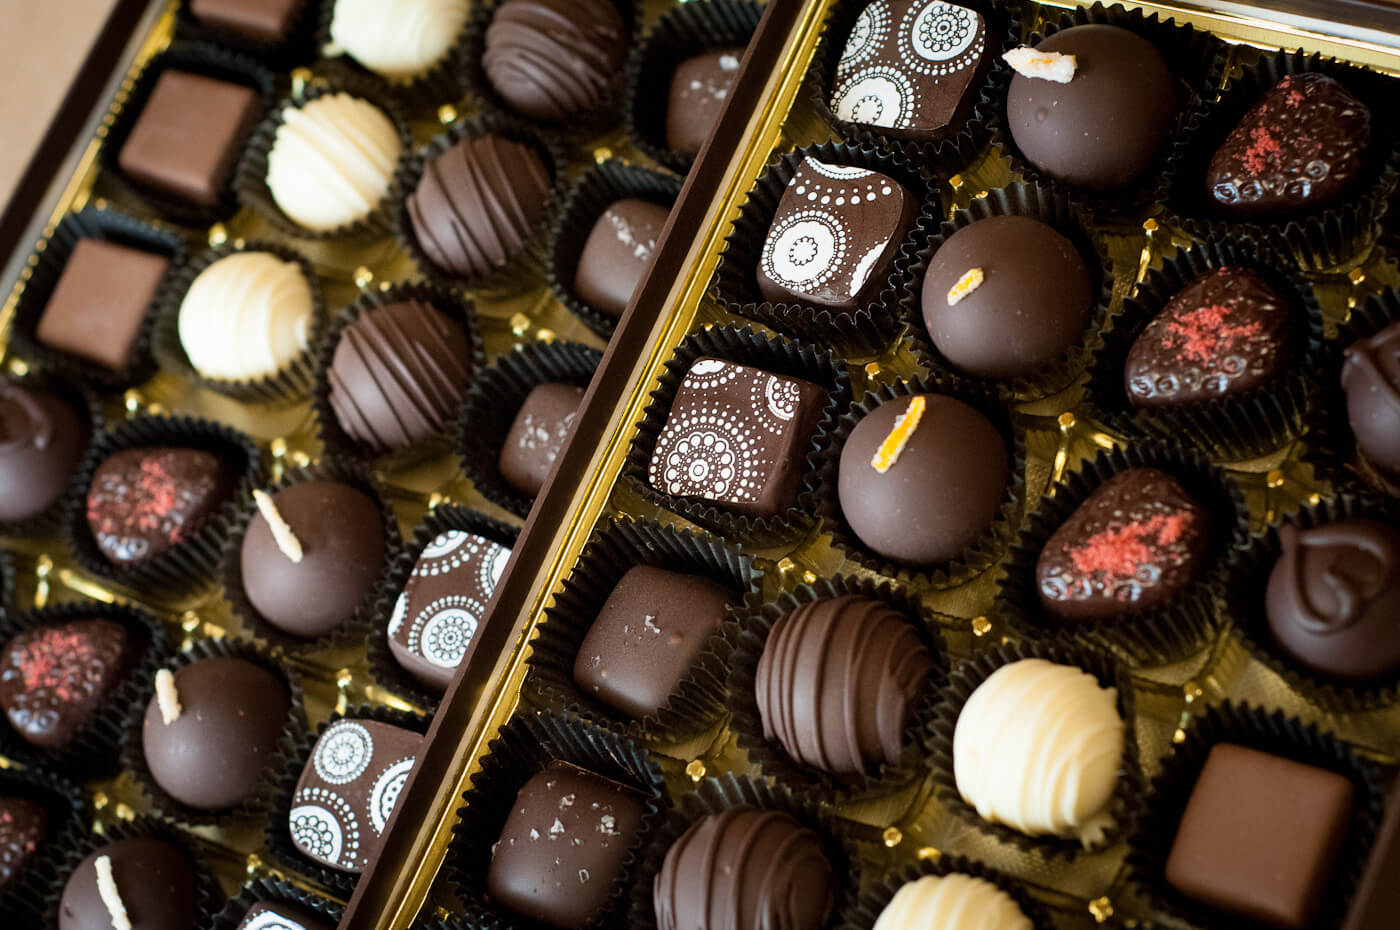 North Carolina Chocolate Shops You Shouldn't Miss – Our State Magazine